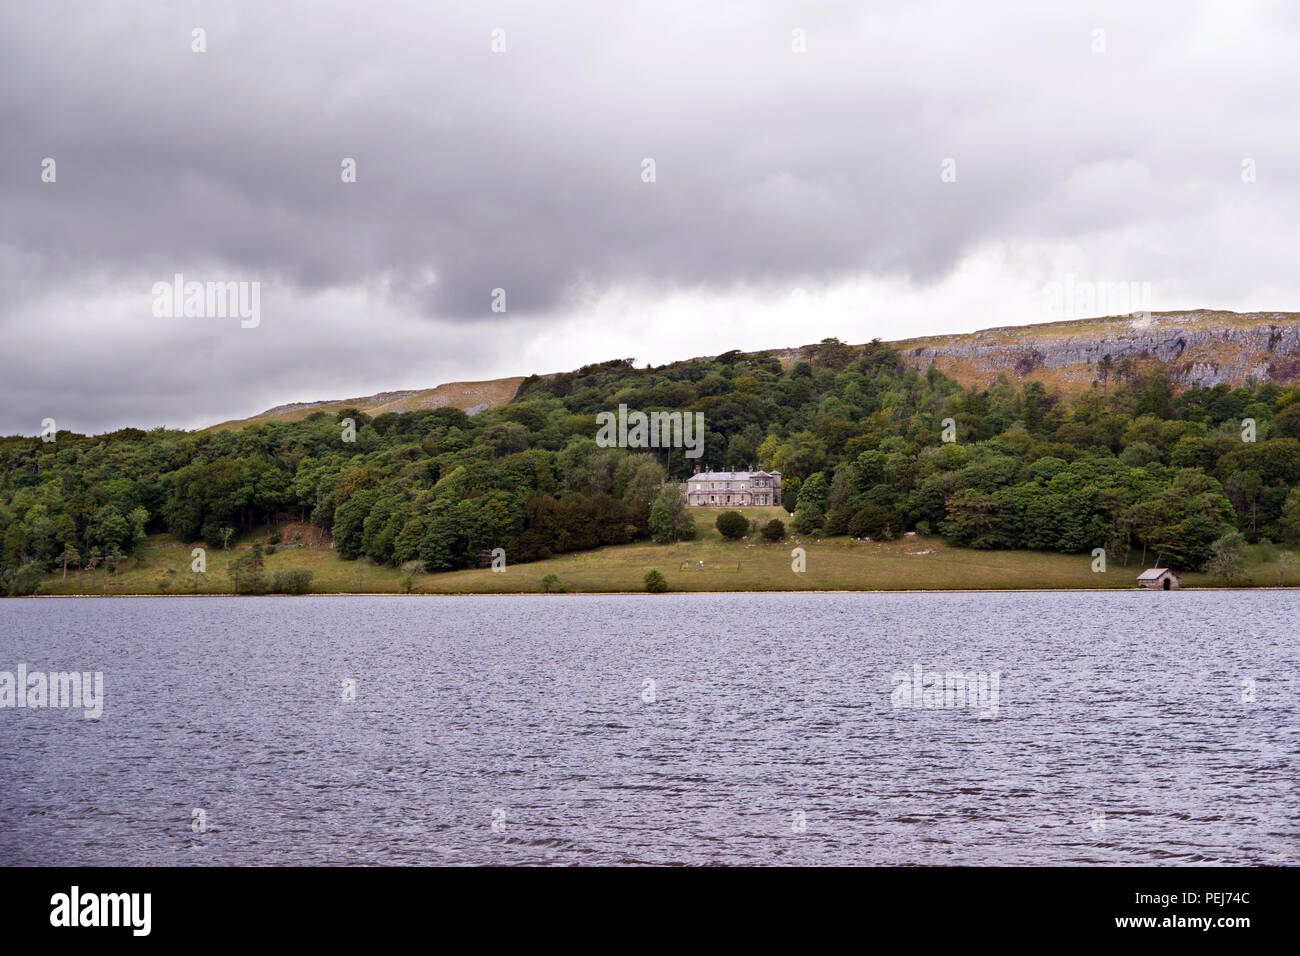 Malham Tarn is a glacial lake in the Yorkshire Dales. It is one of only eight upland alkaline lakes in Europe and is of major conservation interest. - Stock Image